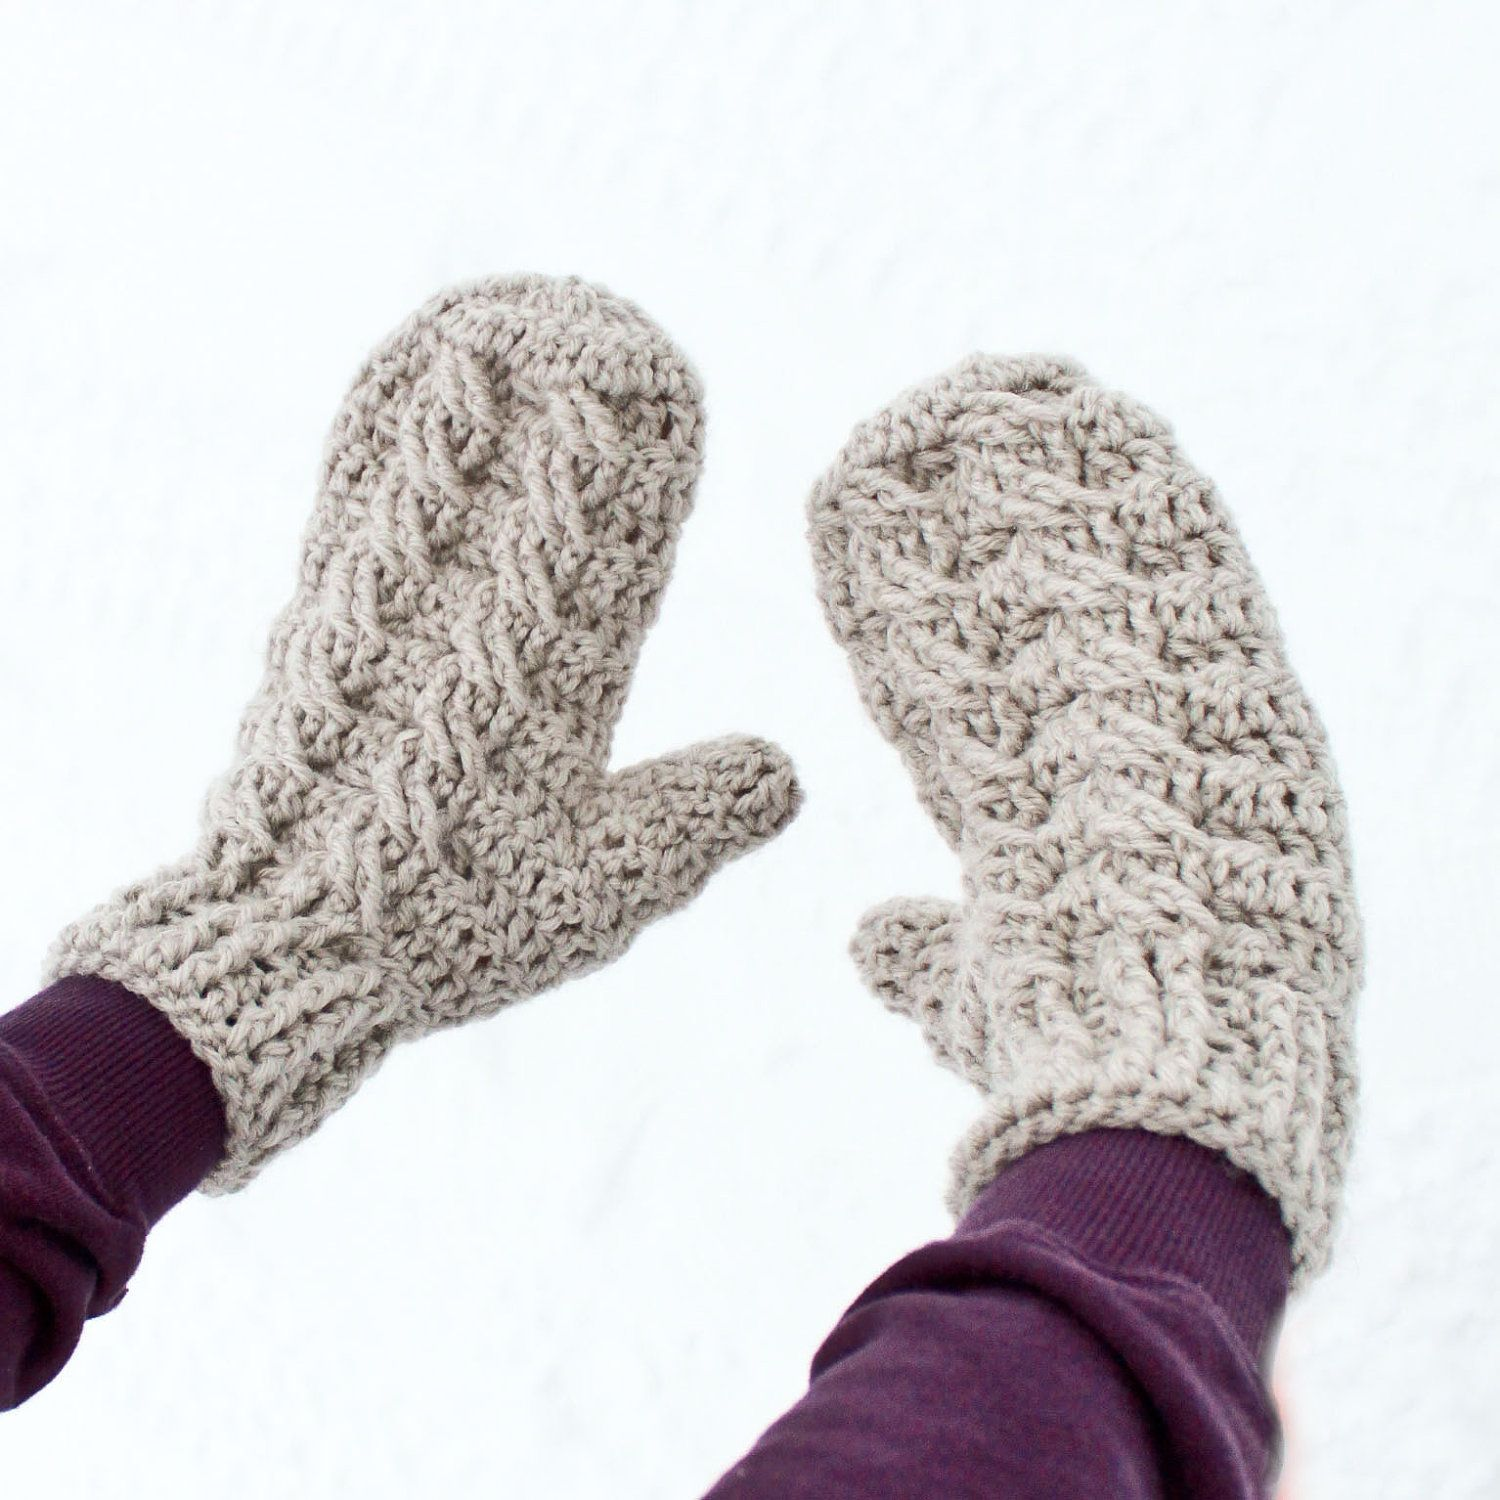 Instant Download - Crochet Pattern - Cable Mittens and Cowl (Adult ...